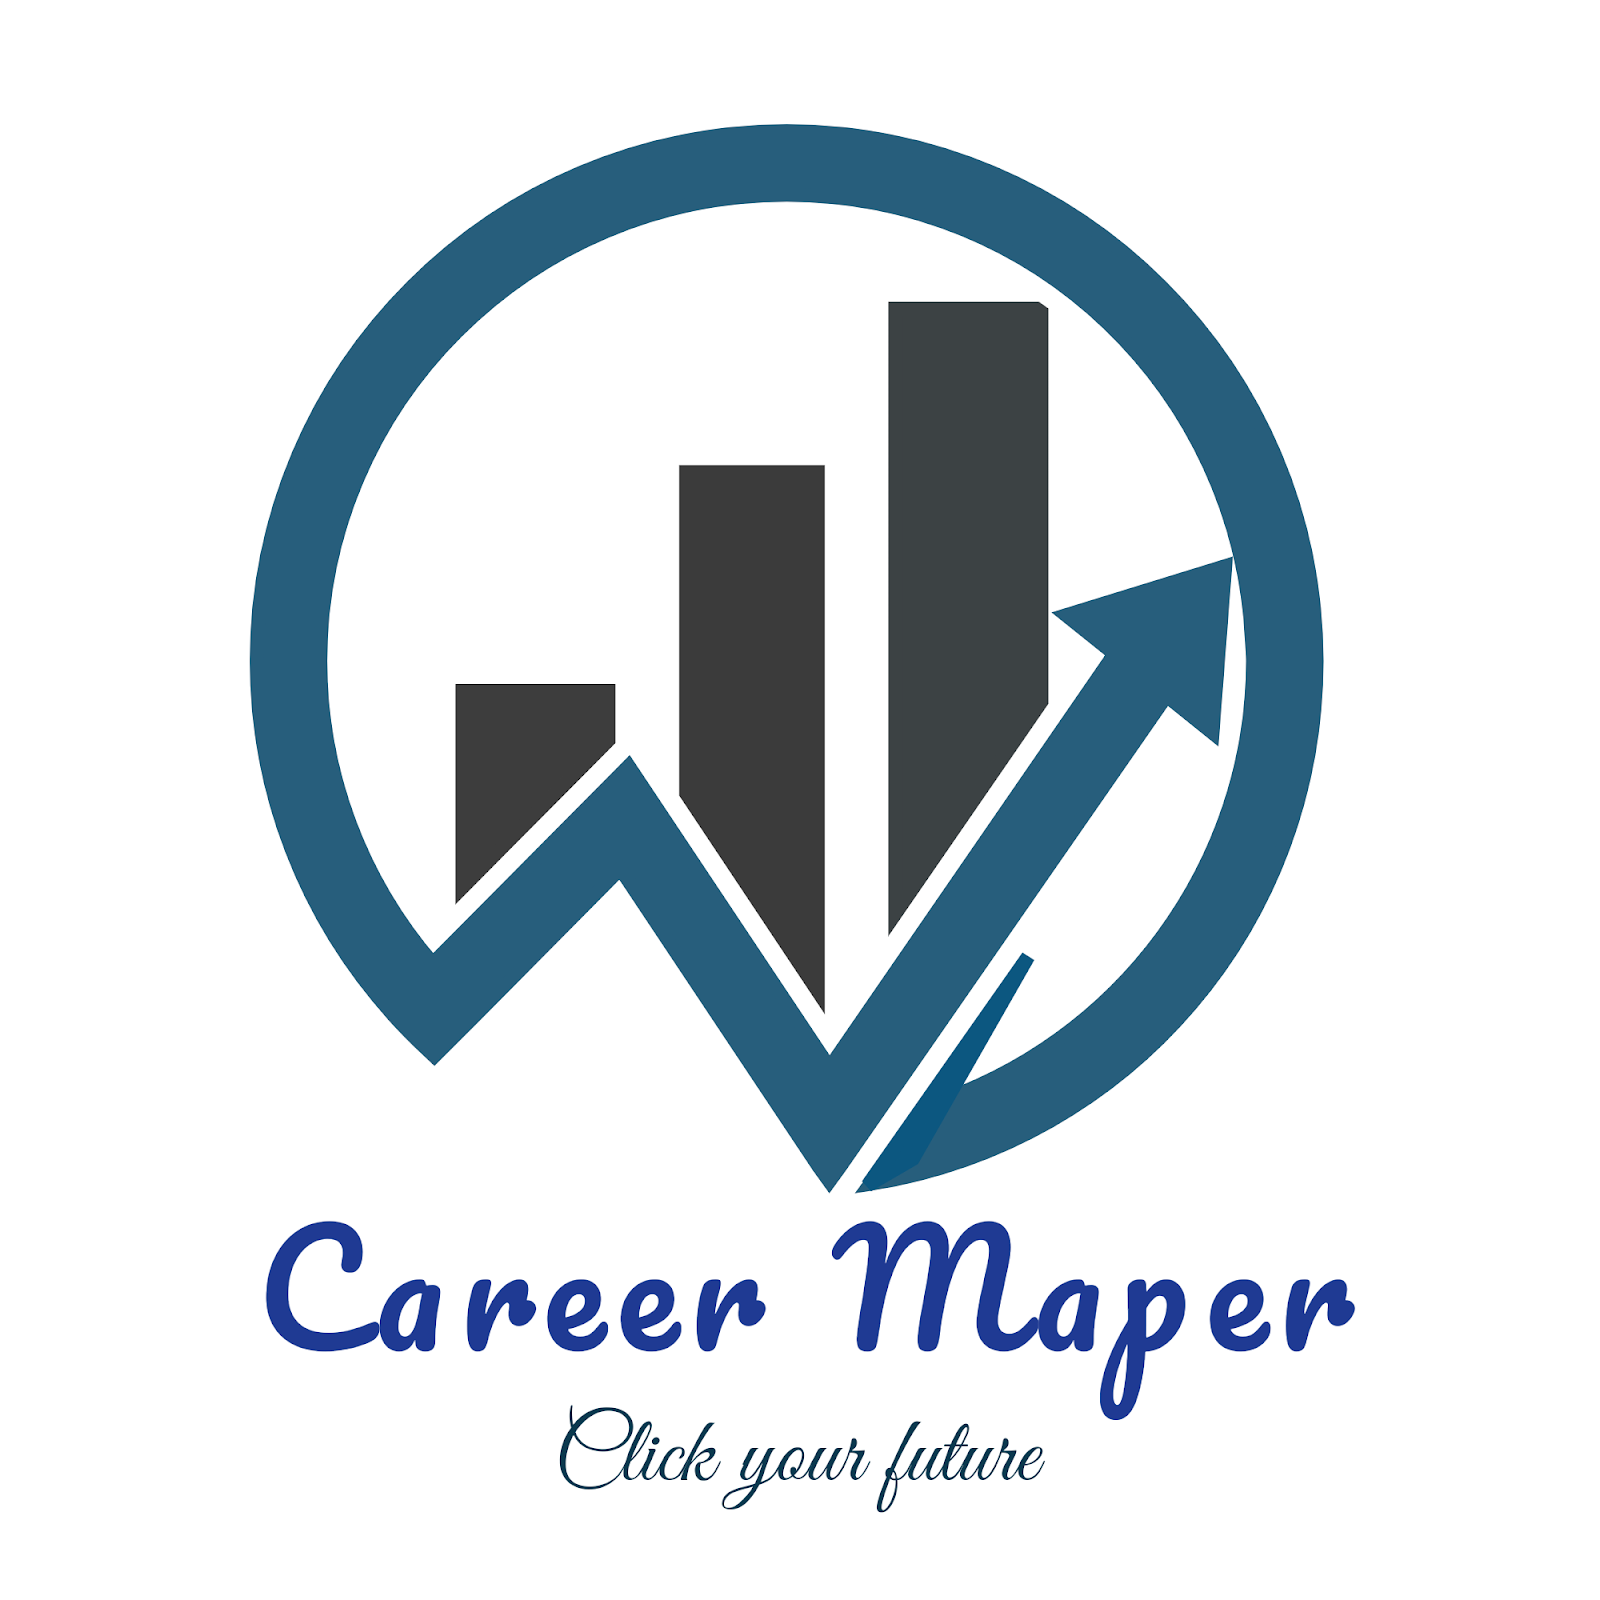 Career Maper